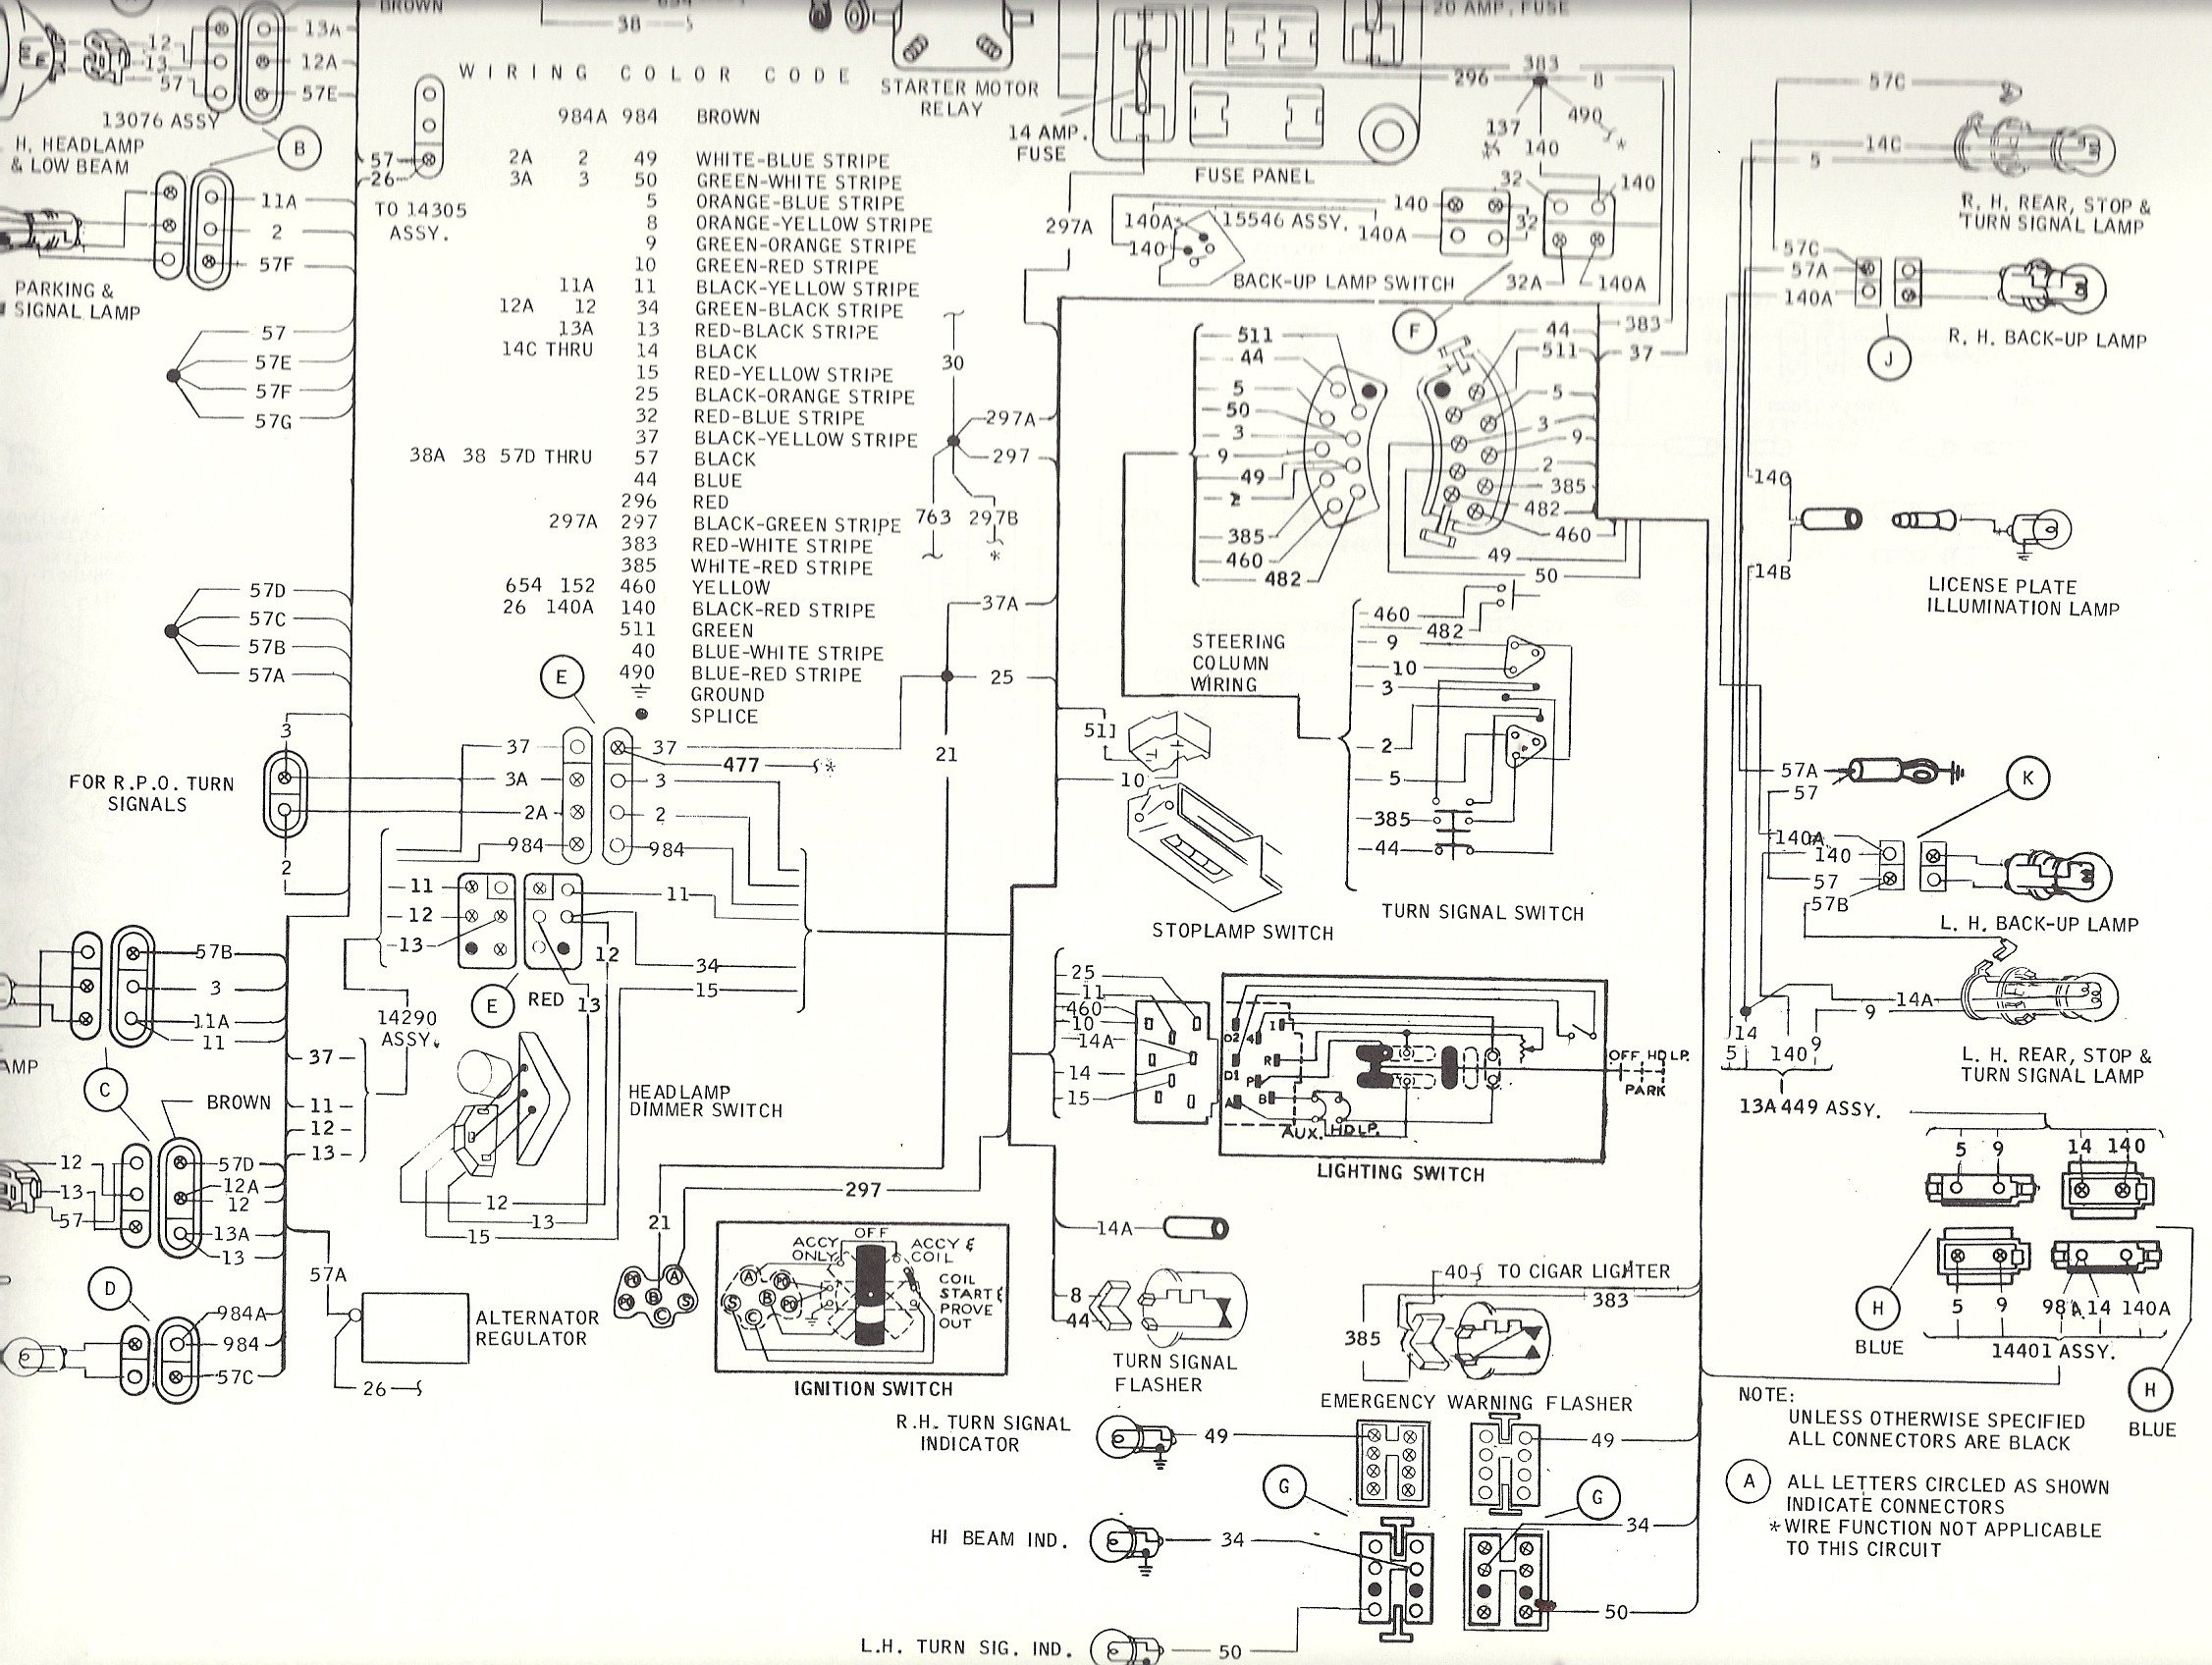 1969 Mustang Turn Signal Wiring Diagram Mastering Ignition Switch 1963 Jeep J 200